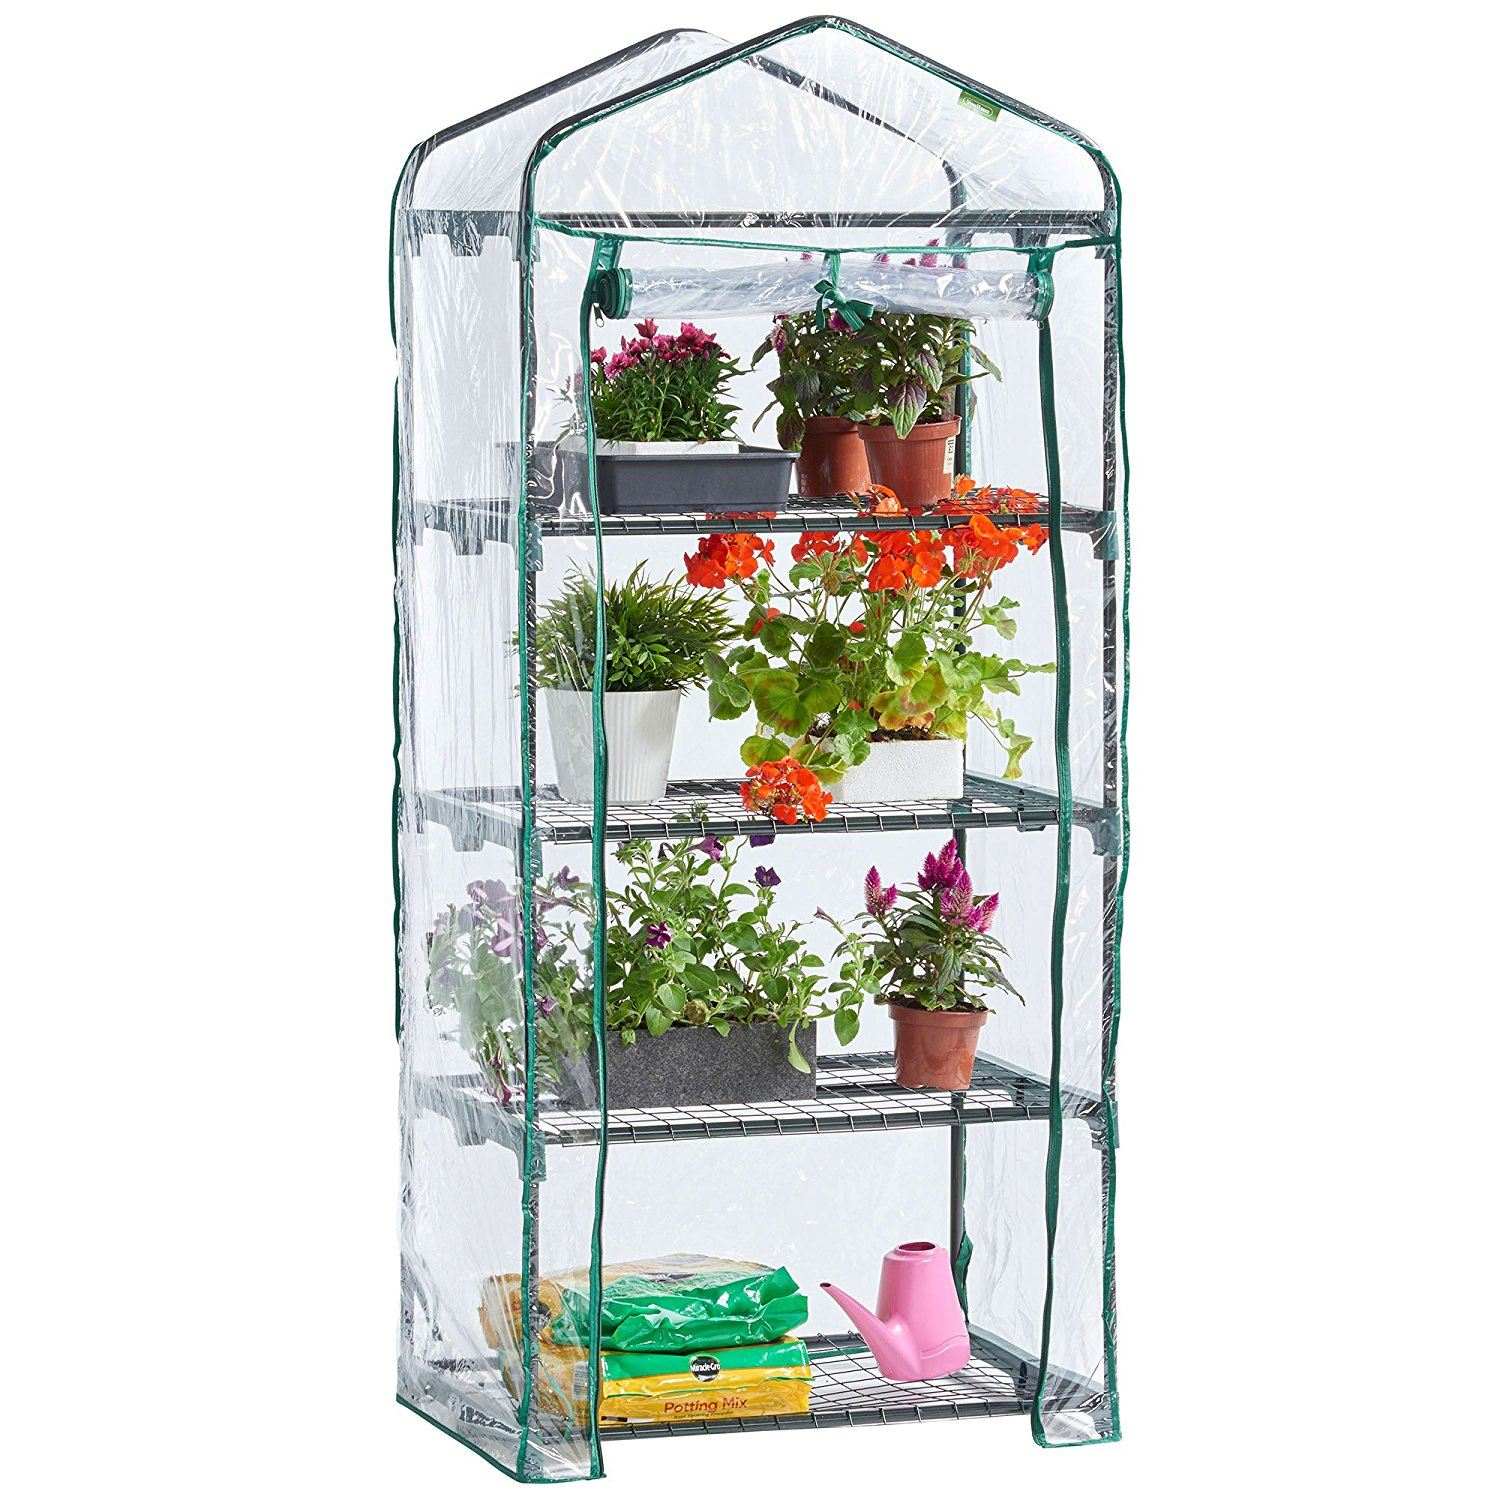 NEW GREENHOUSE COLD FRAME 4 TIER WITH SHELVING /& REINFORCED COVER OUTDOOR GARDEN